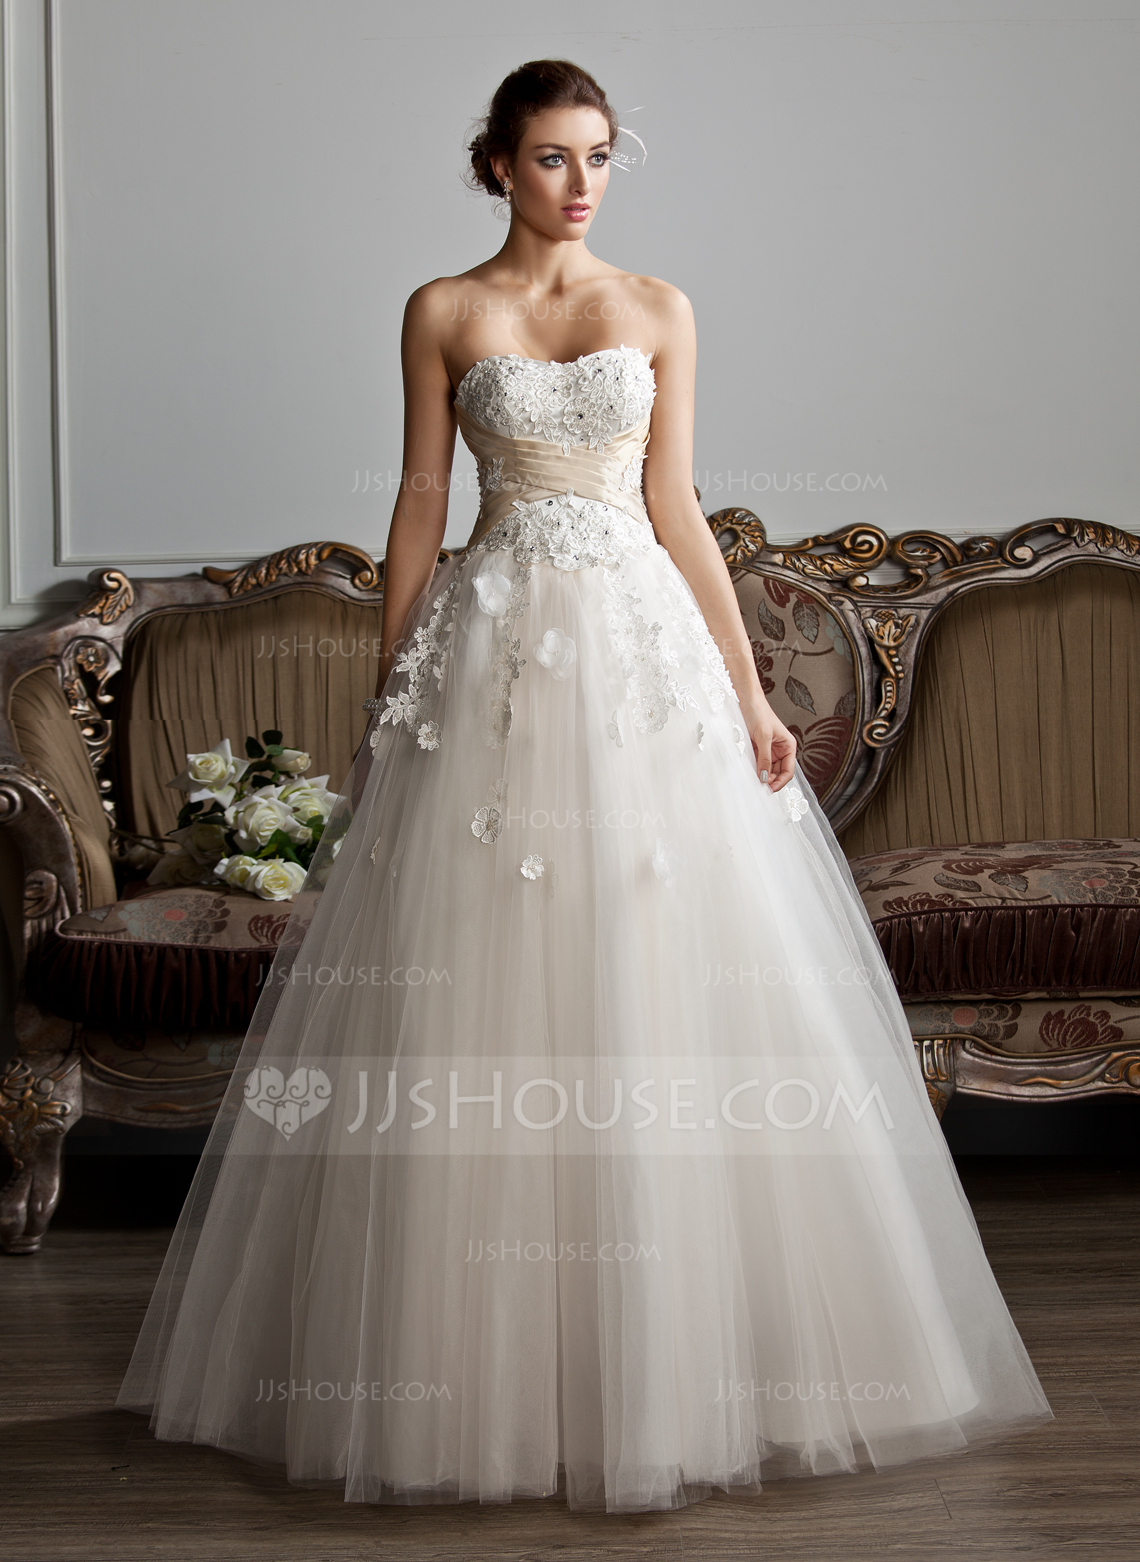 Ball Gown Sweetheart Floor Length Tulle Wedding Dress With Ruffle Sash Beading Appliques Lace Flower S g tulle wedding dress Home Wedding Dresses Loading zoom